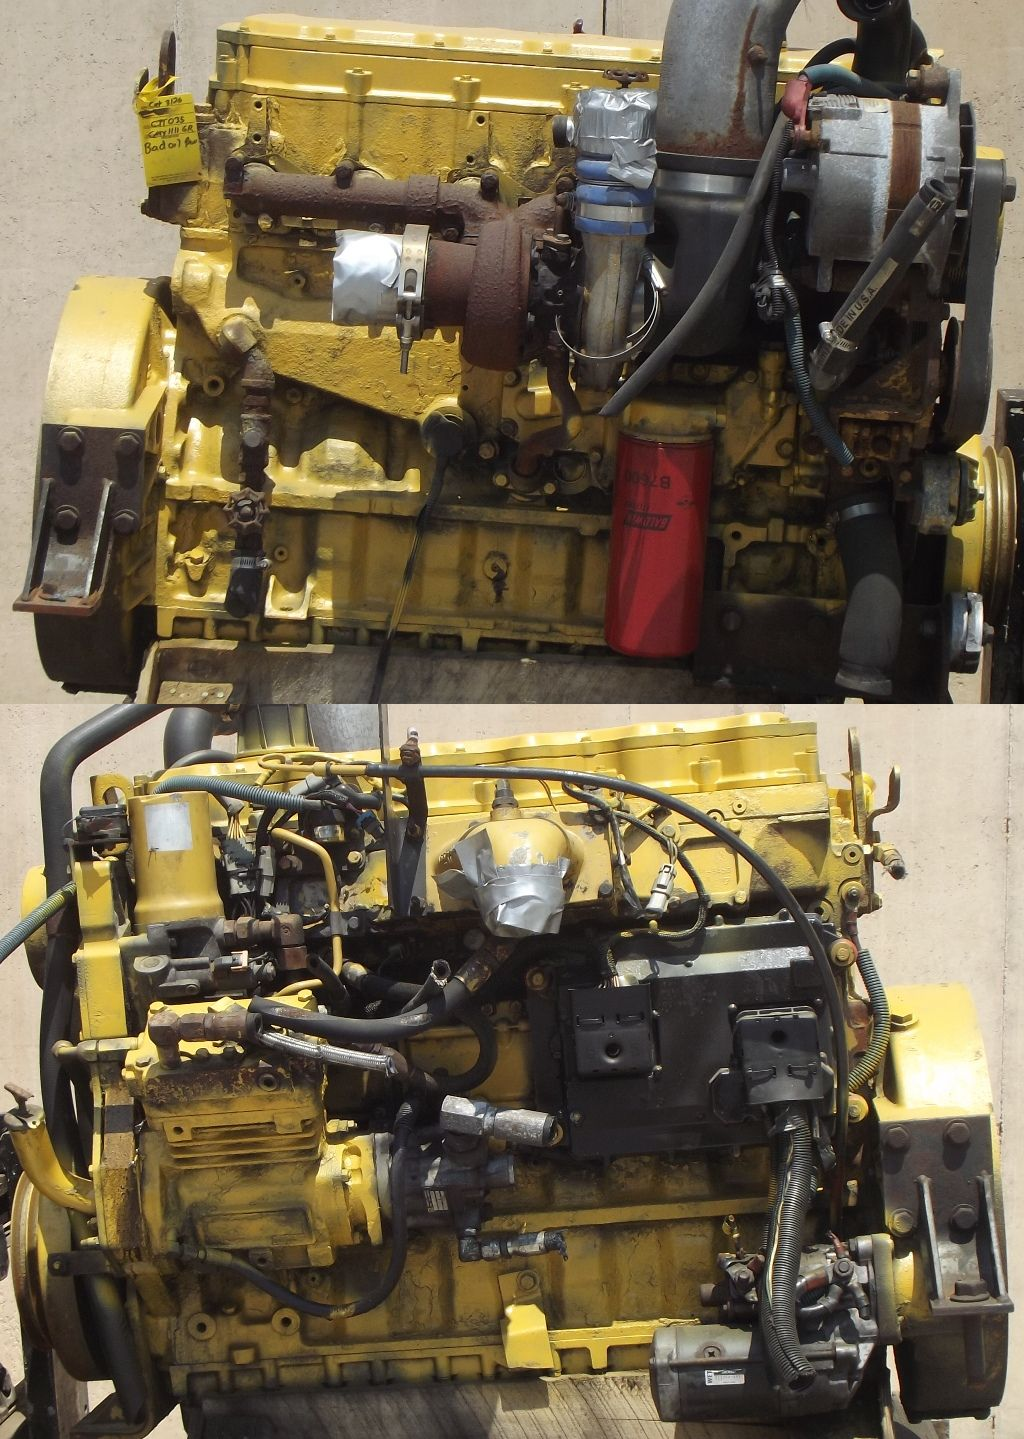 181936041713 moreover 200 Gallon Skid Mounted Pressure Washer Sprayer For Pickups And Flatbeds as well Caterpillar Ct C12 Cylinder Head Reman R502120 R504243 R515452 R115594 in addition Continental F124 Engine Block Used F124a300 Flat Head Still Has Valves In Block additionally Detroit Diesel 6 71. on caterpillar engine overhaul kits